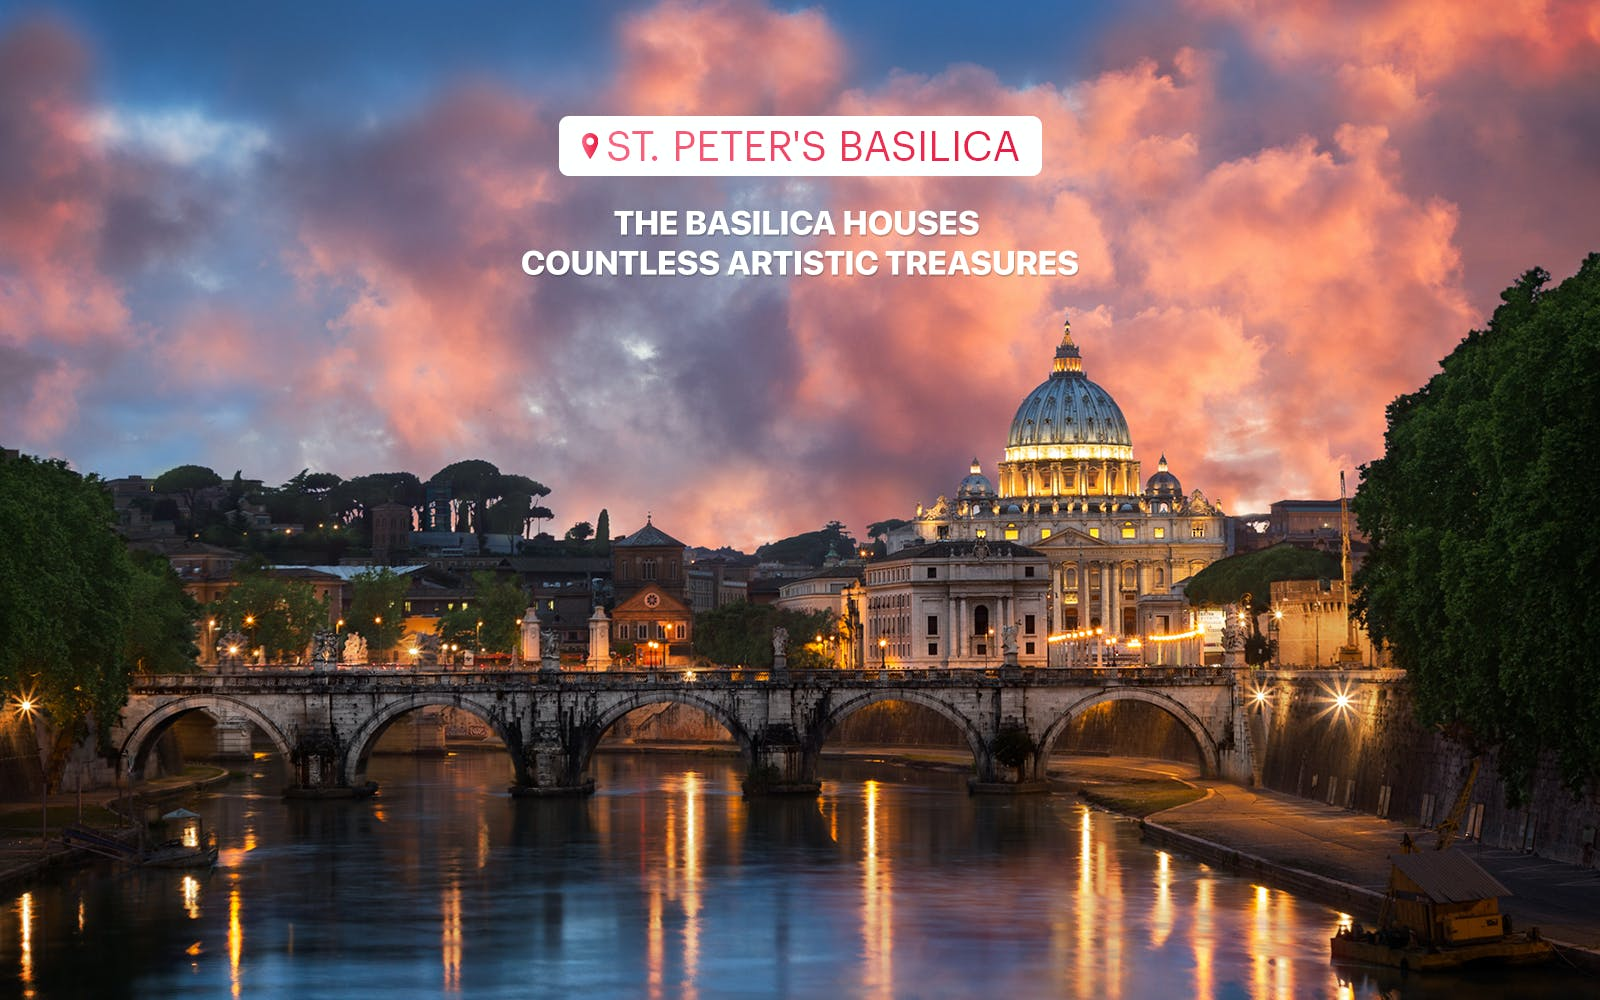 skip the line: st. peter's basilica self guided audio tour -5